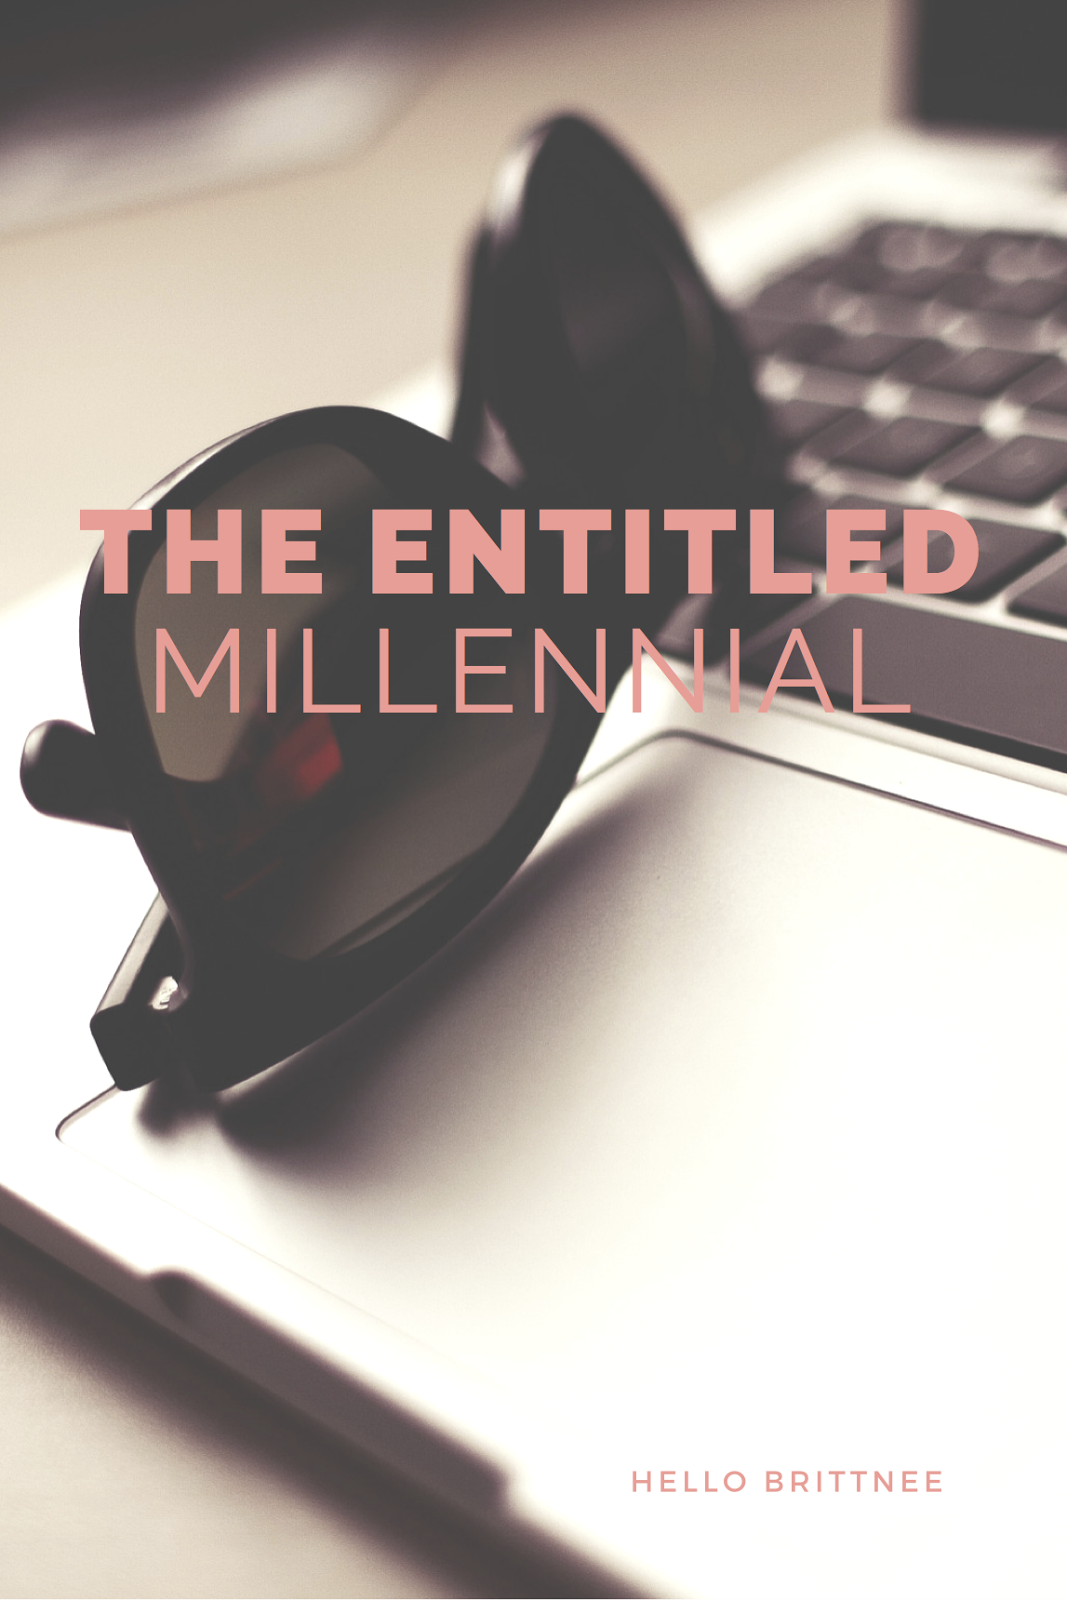 The Entitled Millennial